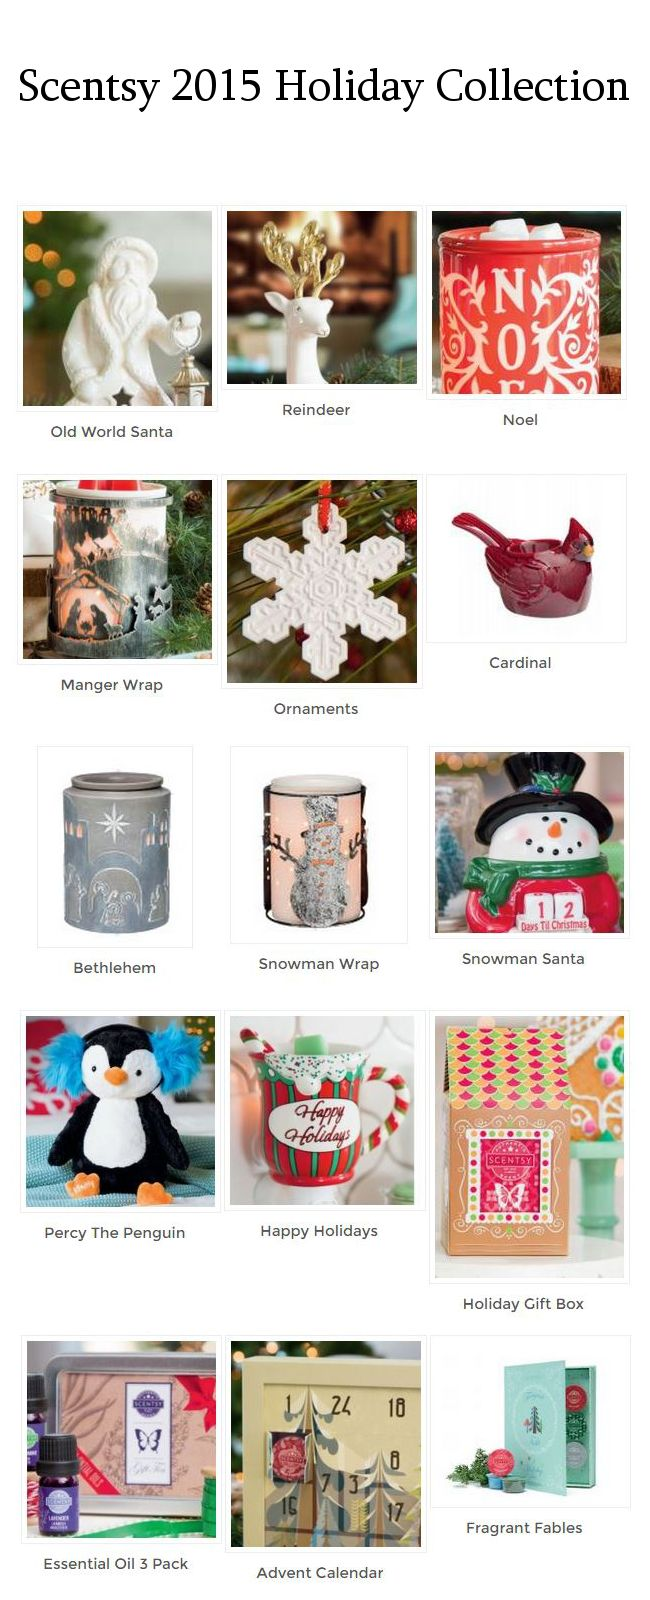 Scentsy Christmas Warmers 2015 Tracy's Scentsy, http://doak.scentsy.us